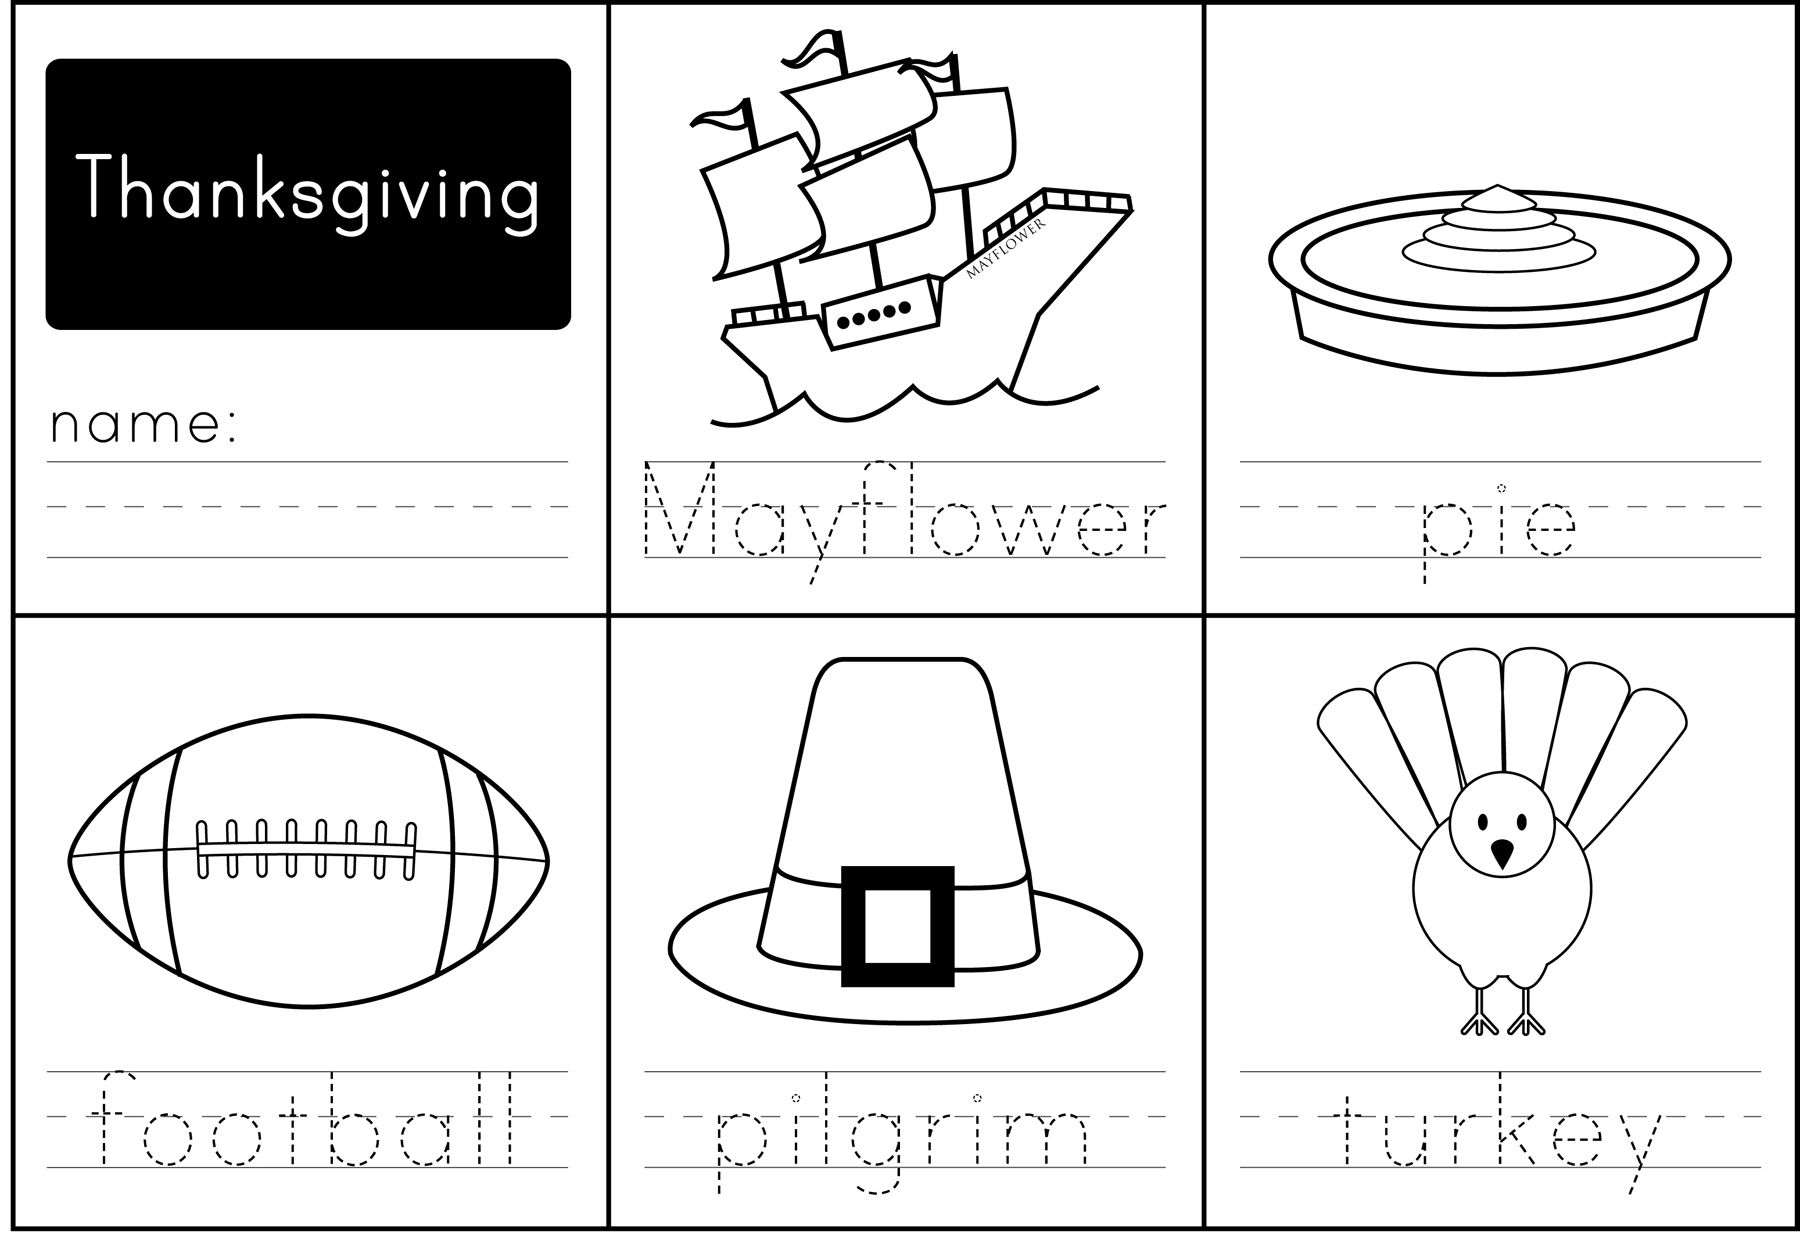 Thanksgiving Words :: All New Worksheet For Your Little